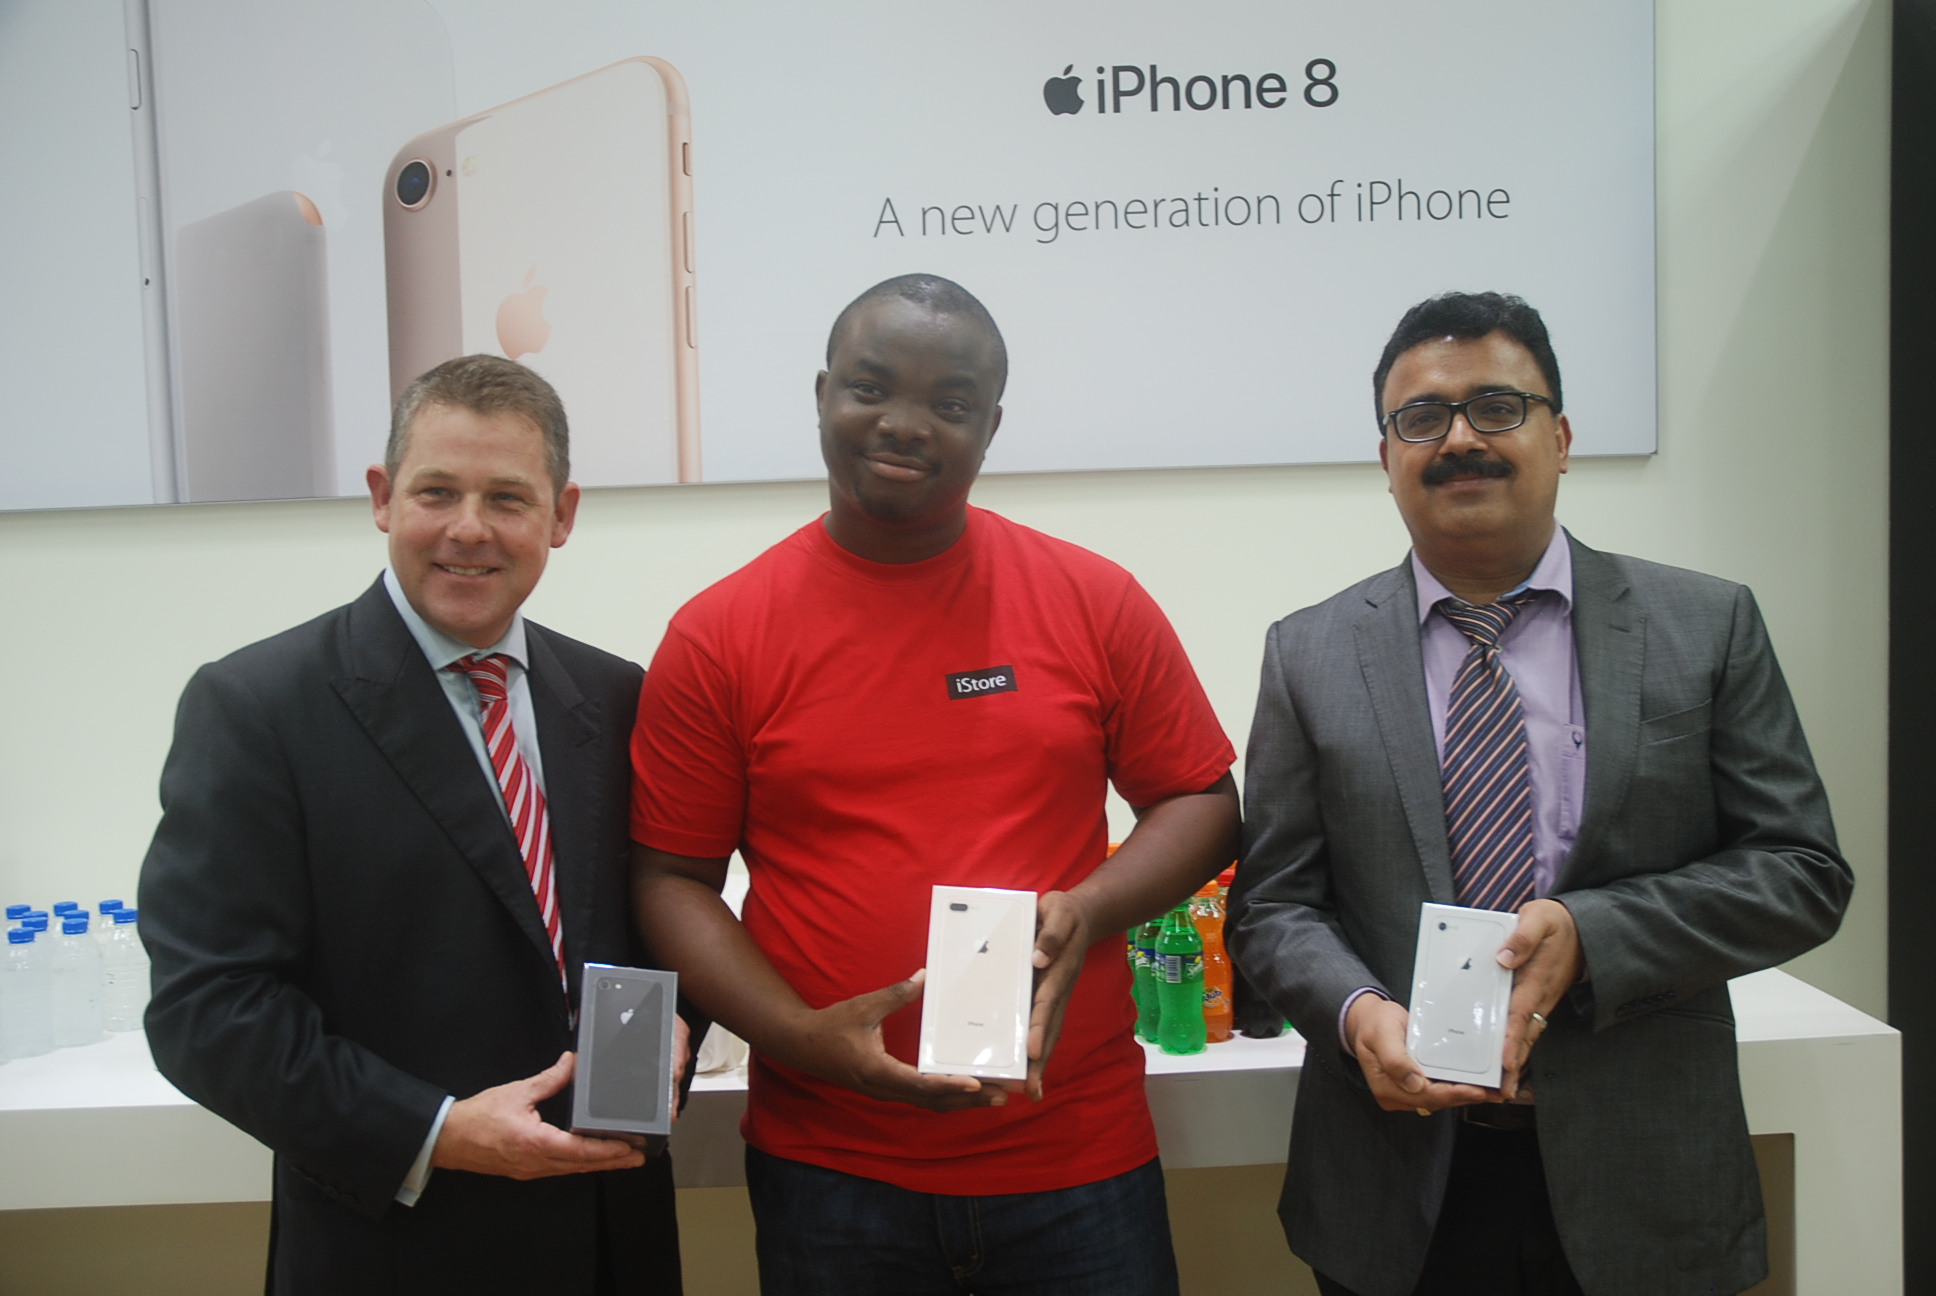 iStore Woos Customers With Instalmental Payment Plan, Others